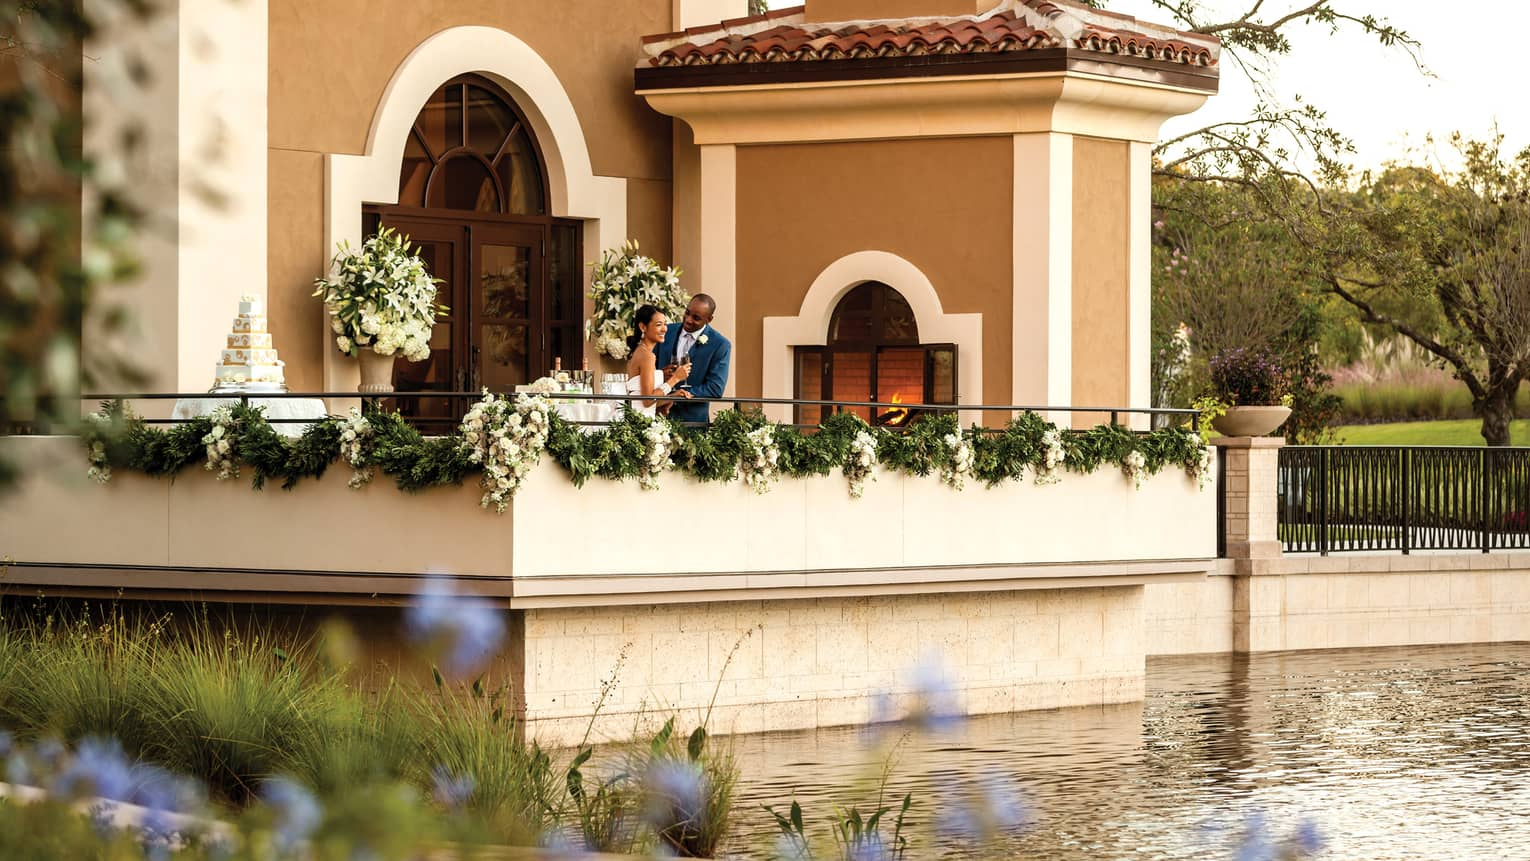 View across water to patio with bride and groom with Champagne, wedding cake, door to event space